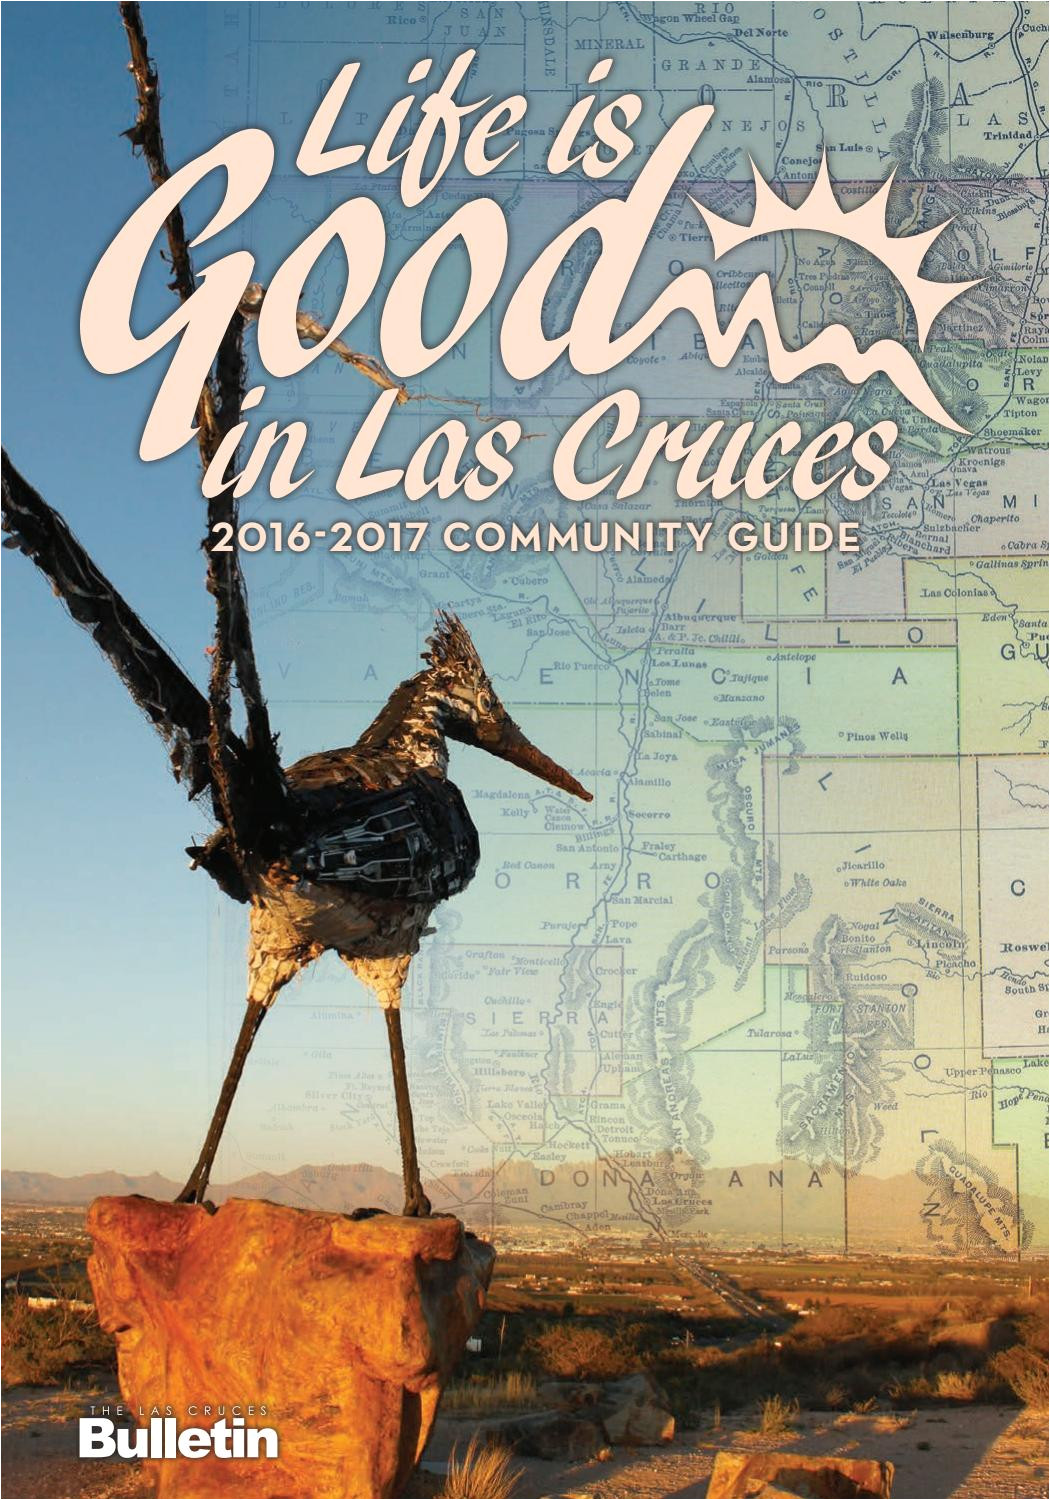 Tv Guide Las Cruces Life is Good In Las Cruces 2016 2017 by Cary Aliza Howard issuu